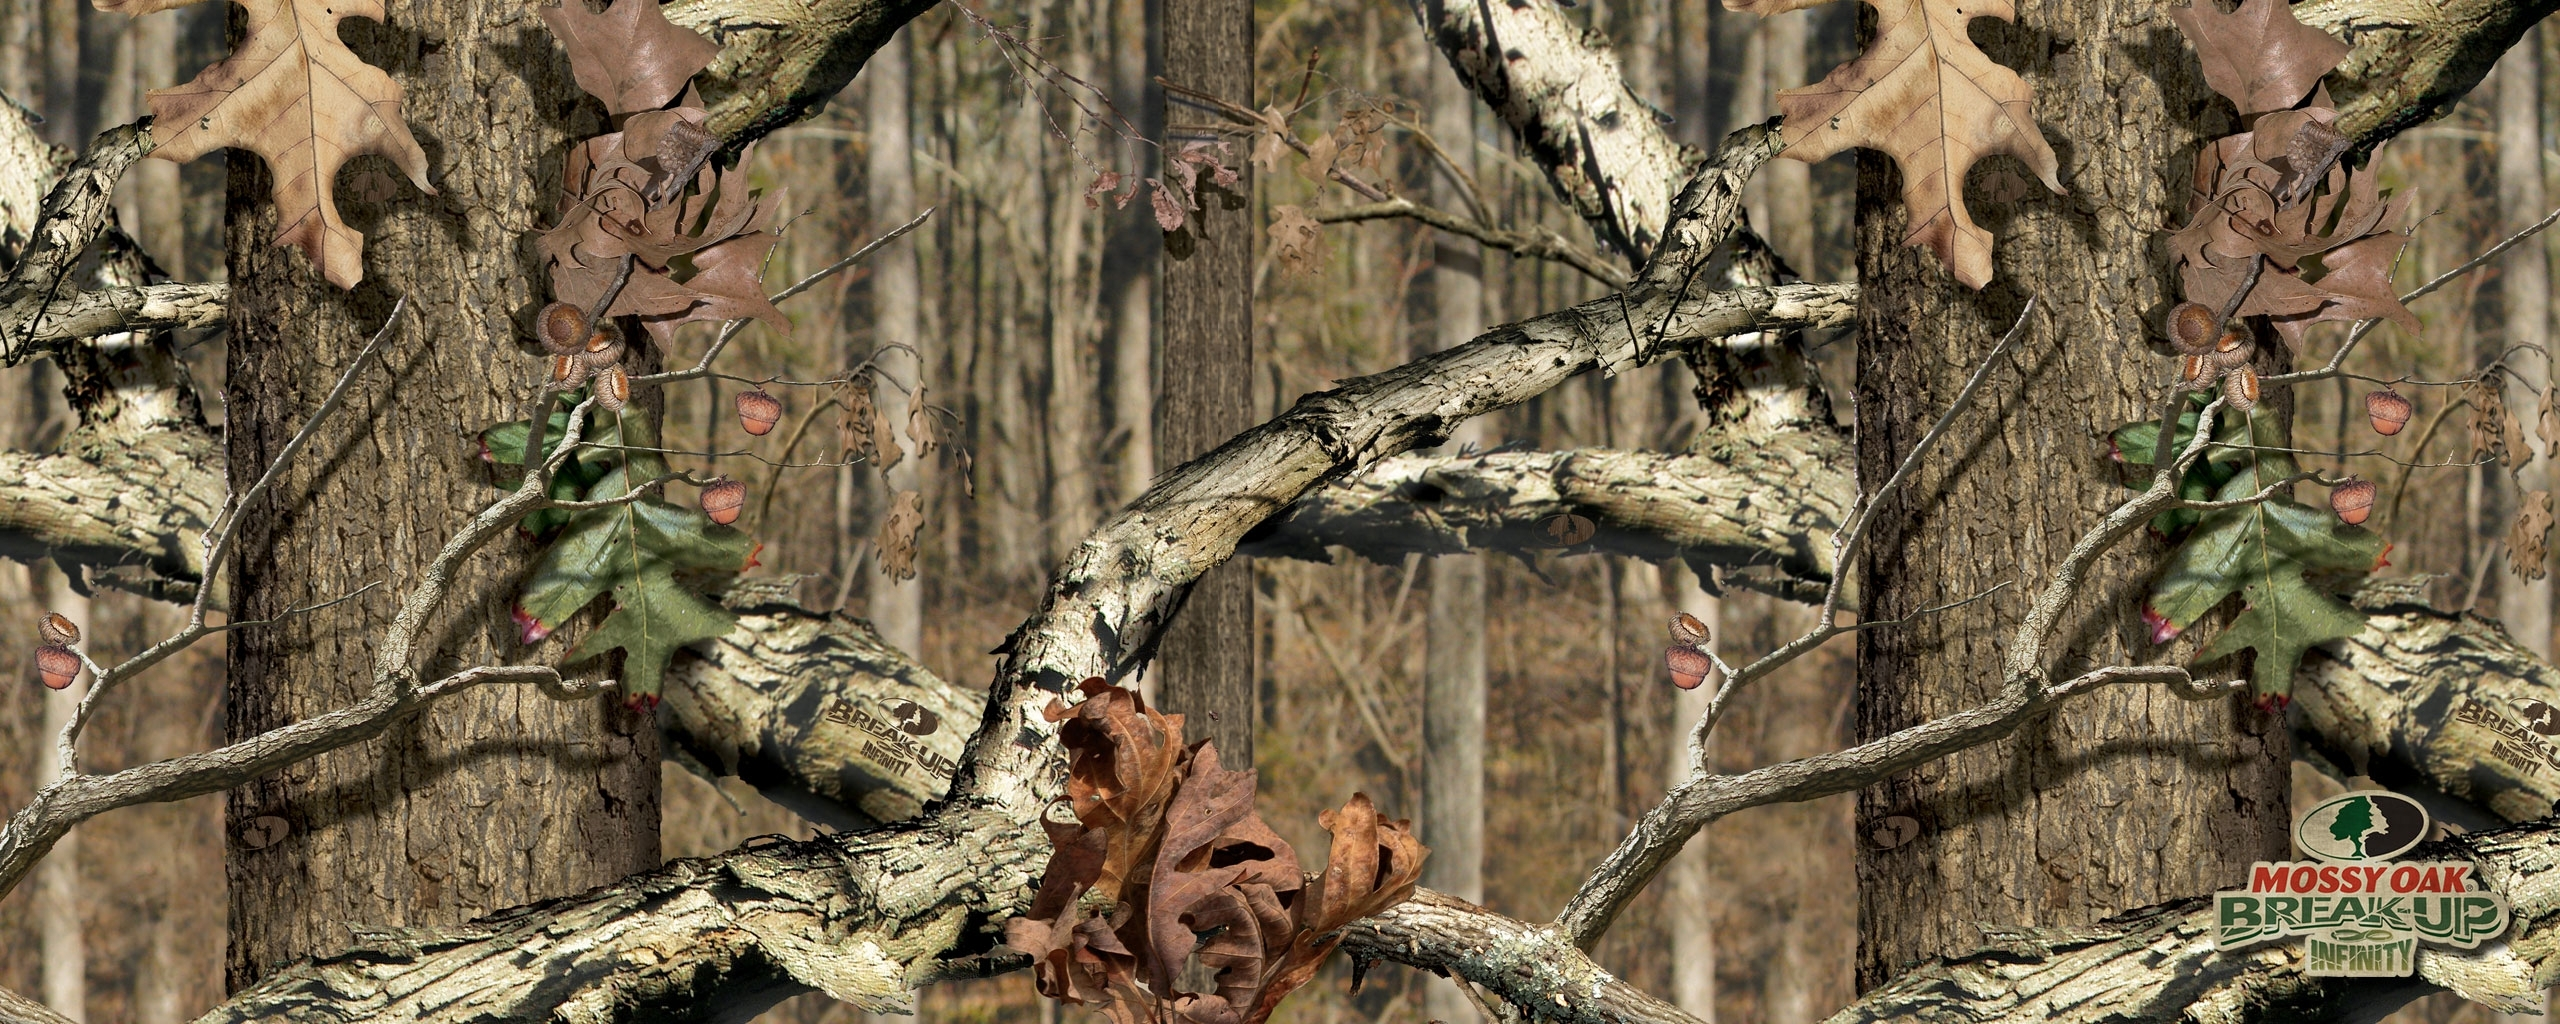 10 Top Deer Hunting Camo Wallpaper FULL HD 1080p For PC Background 2018 Free Download